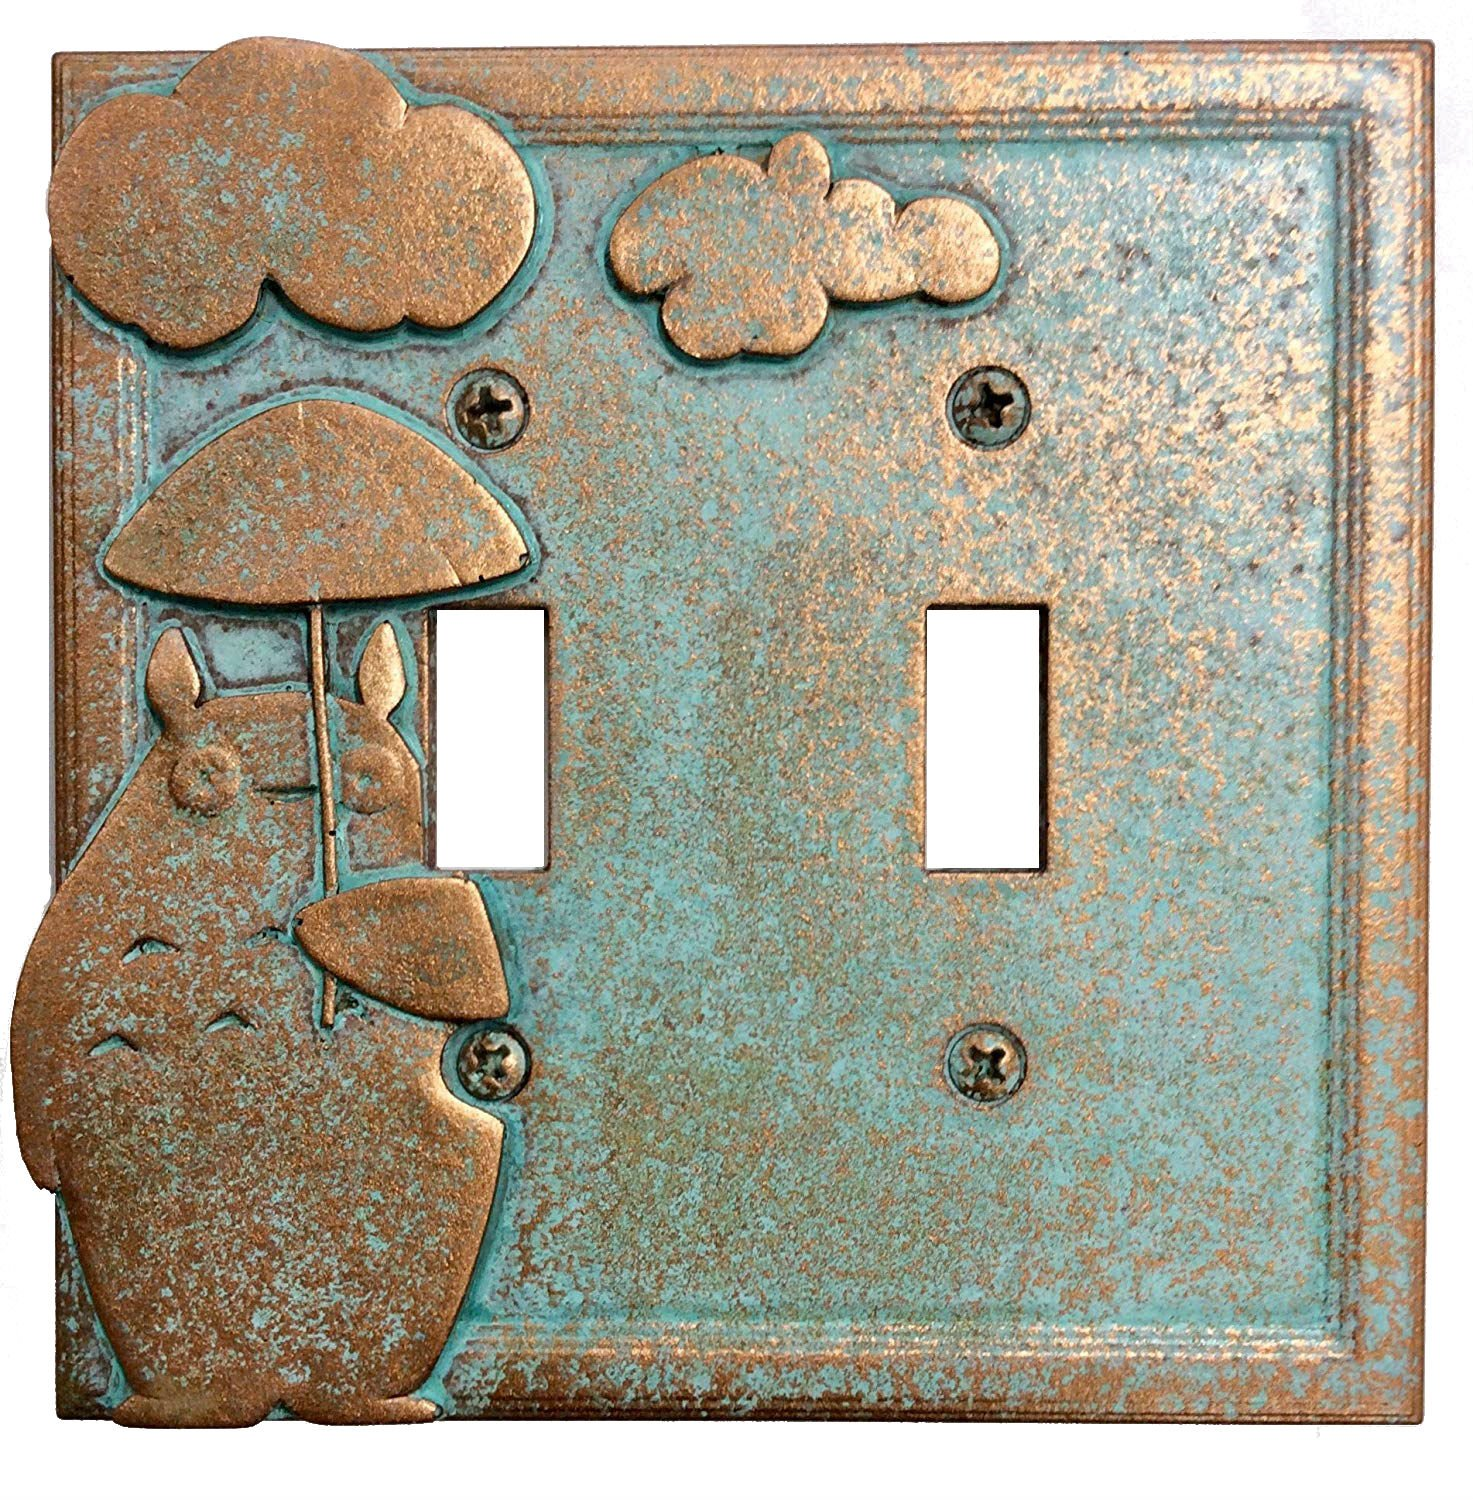 My Neighbor Totoro - Double Light Switch Cover (Aged Patina)